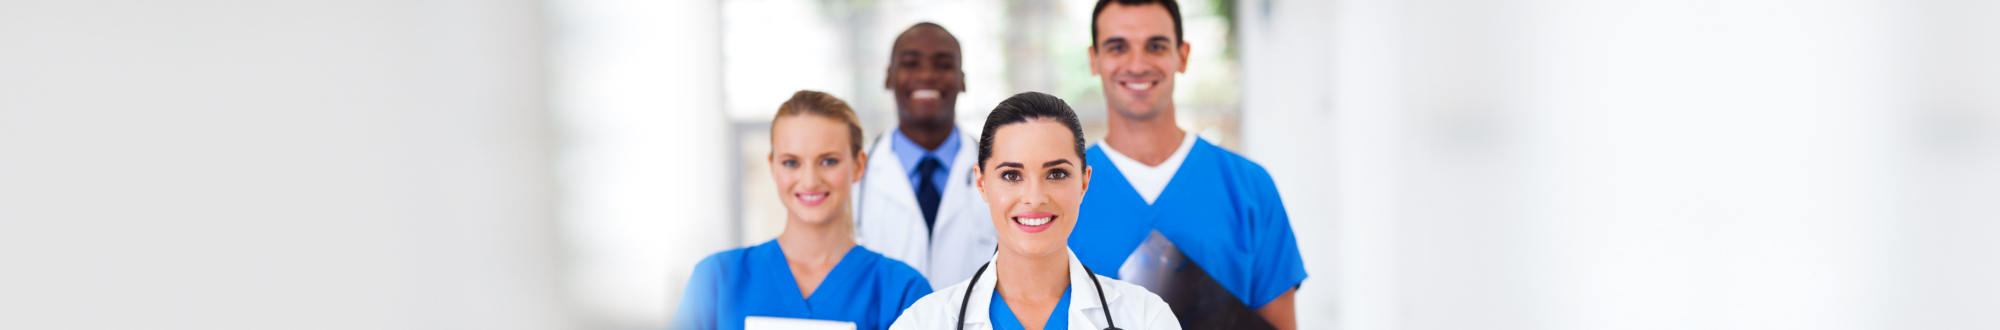 nurses and doctor smiling